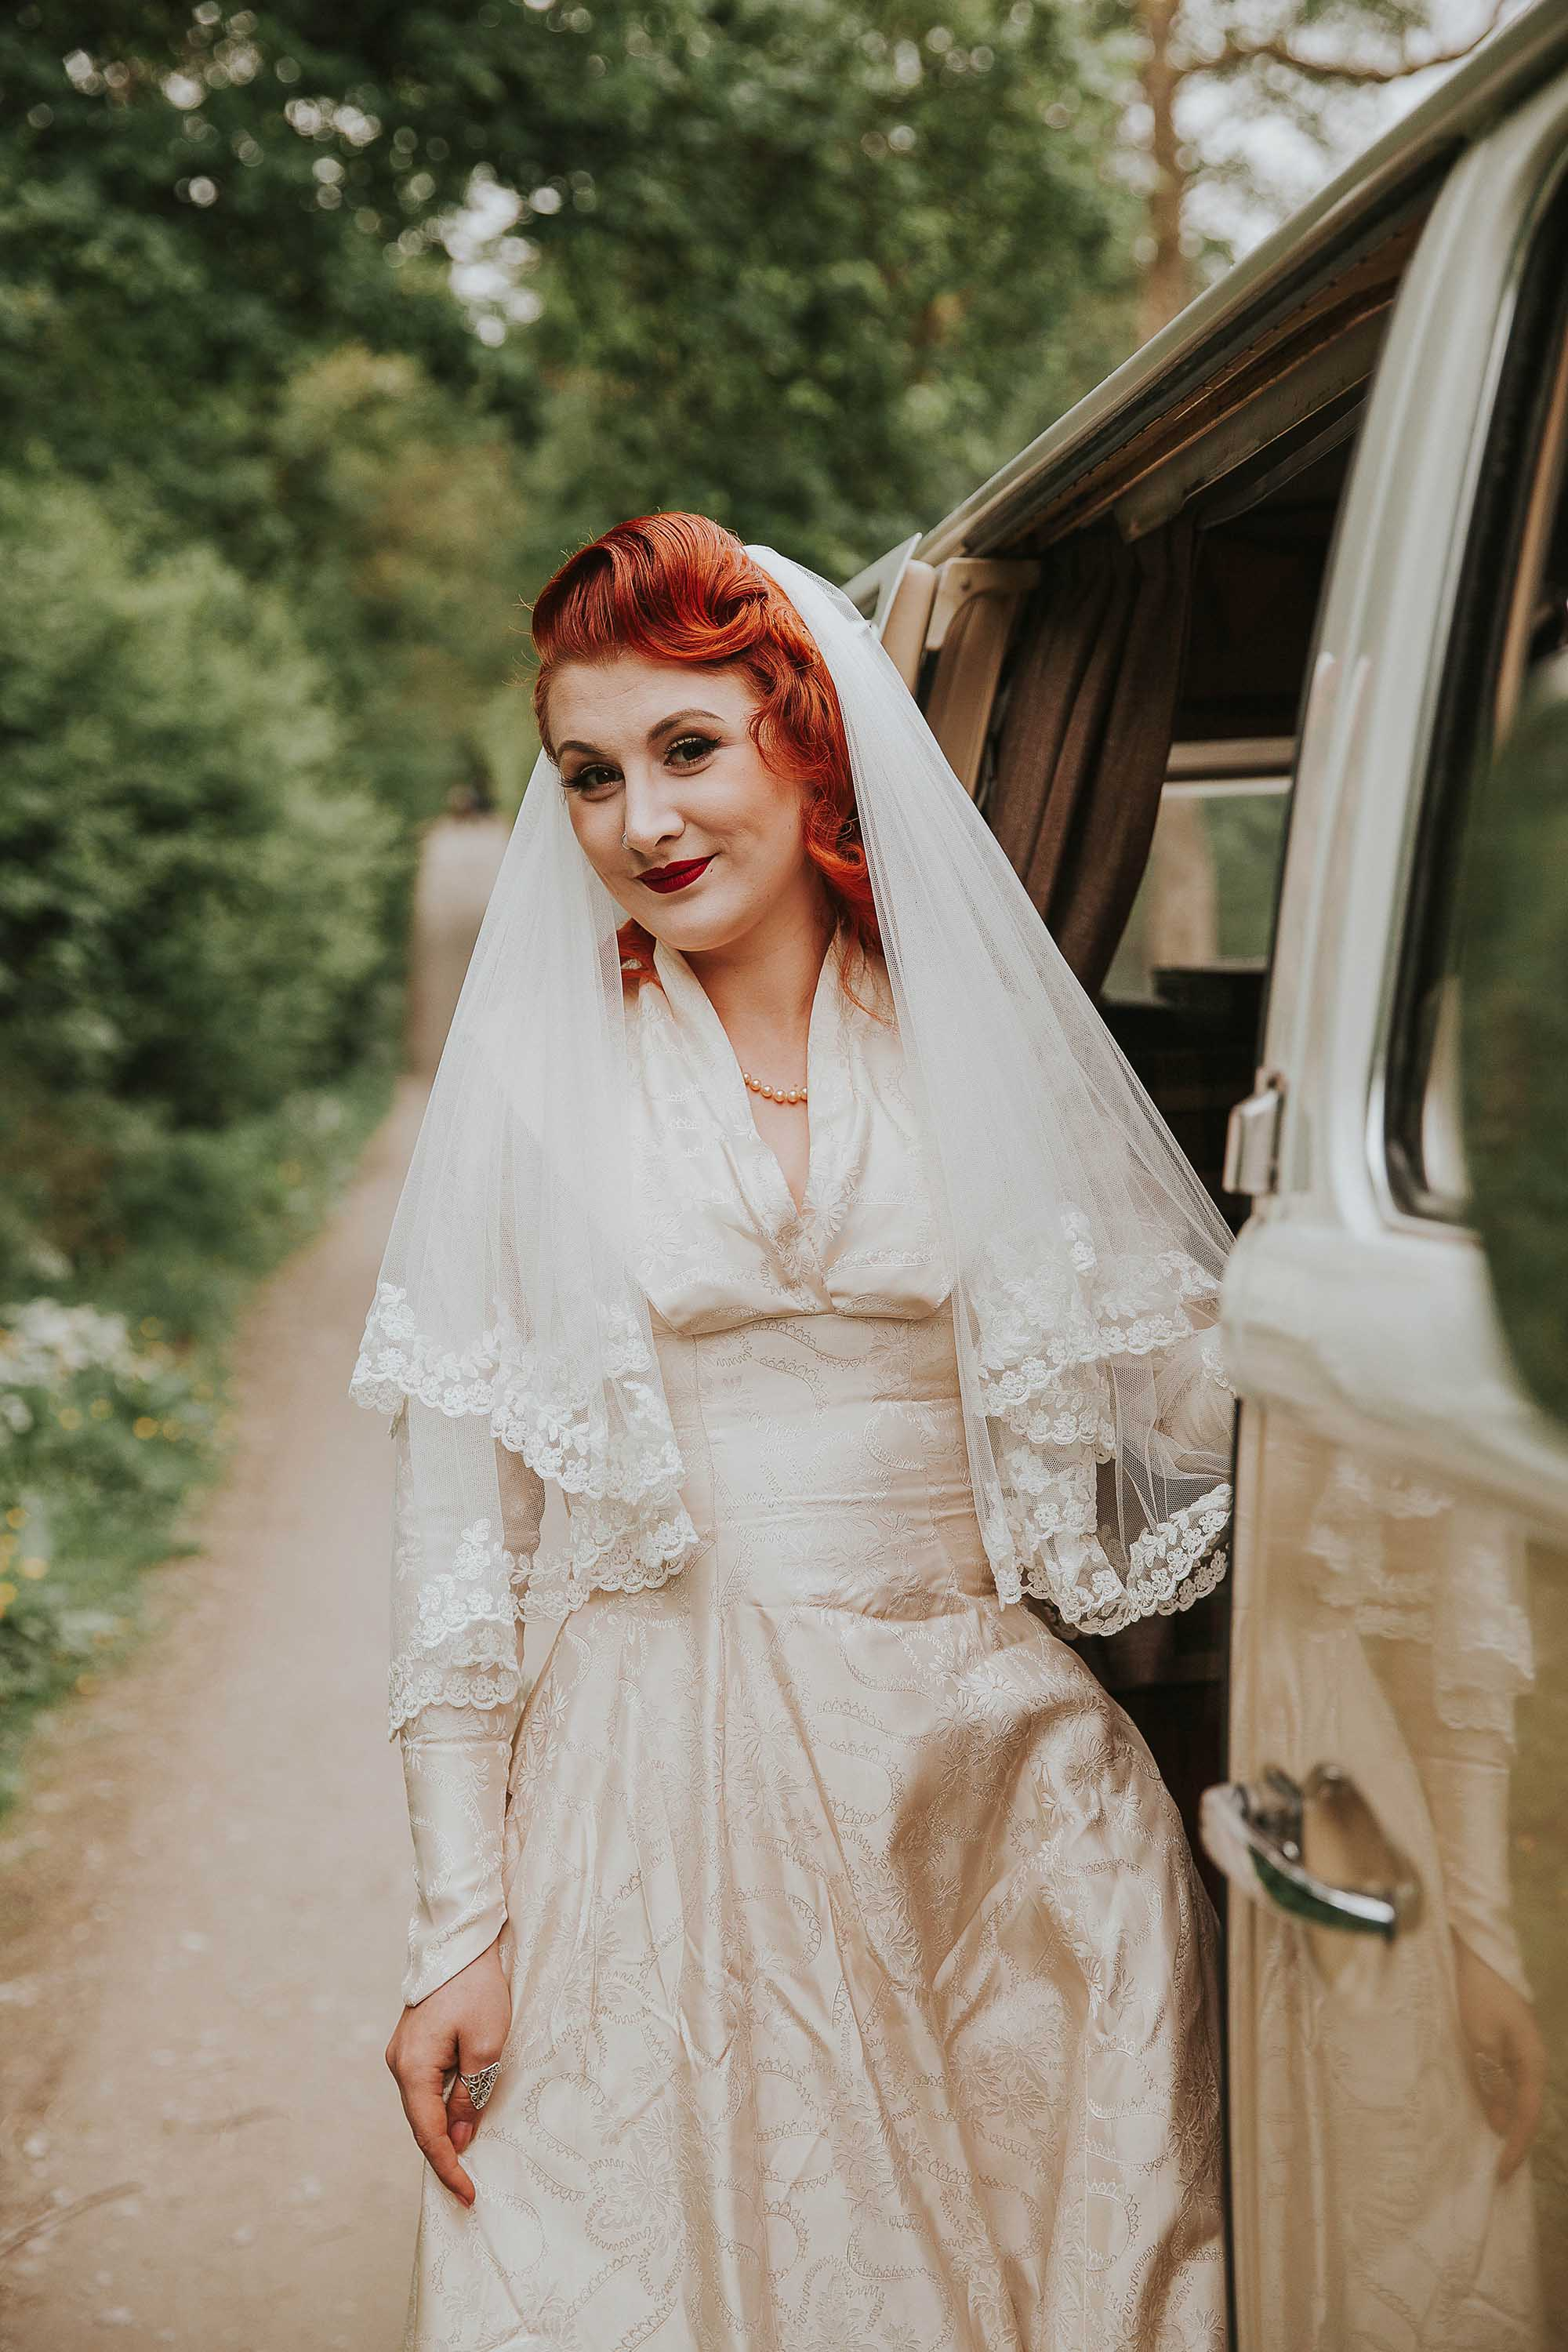 hebdden bridge wedding photographer